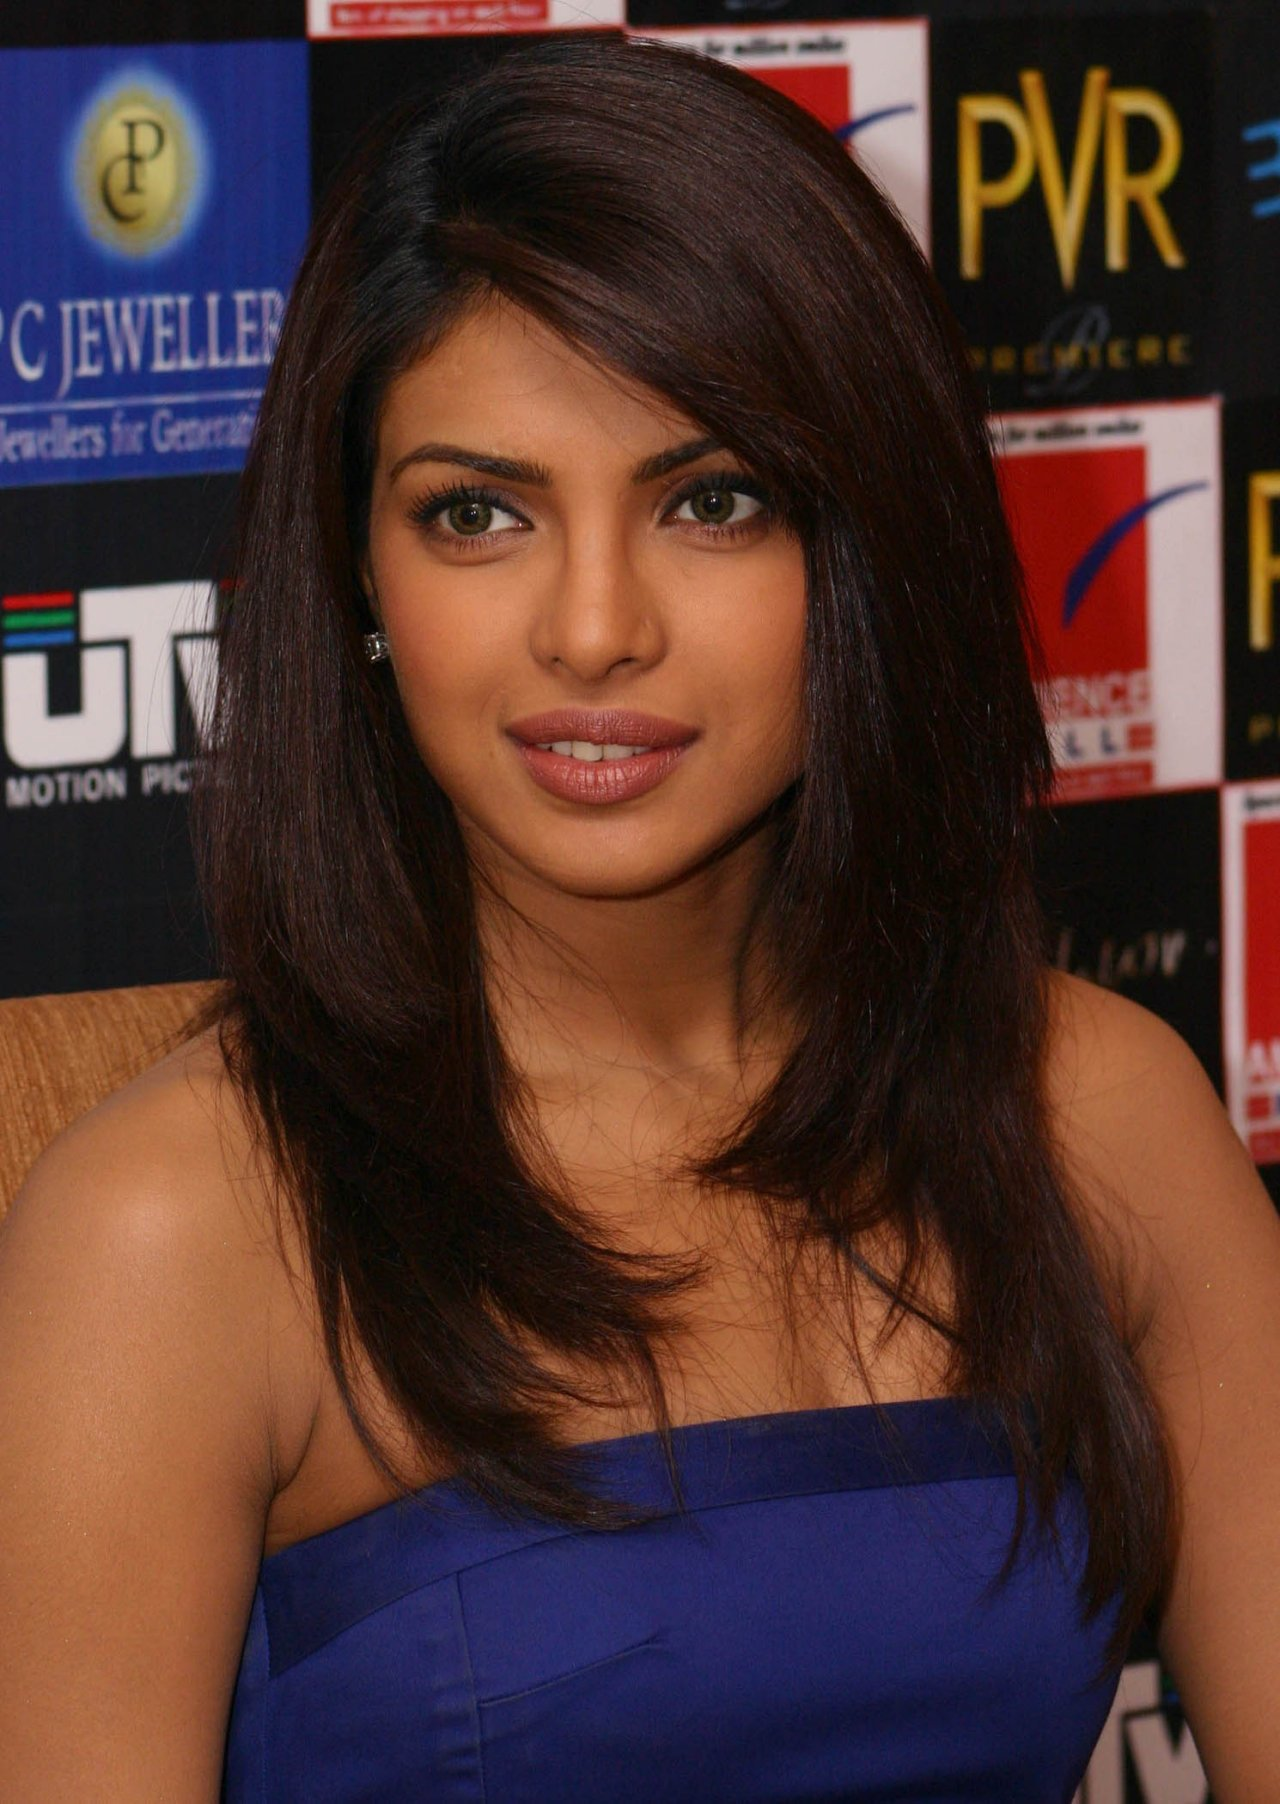 Priyanka Chopra Photo 164 Of 997 Pics Wallpaper